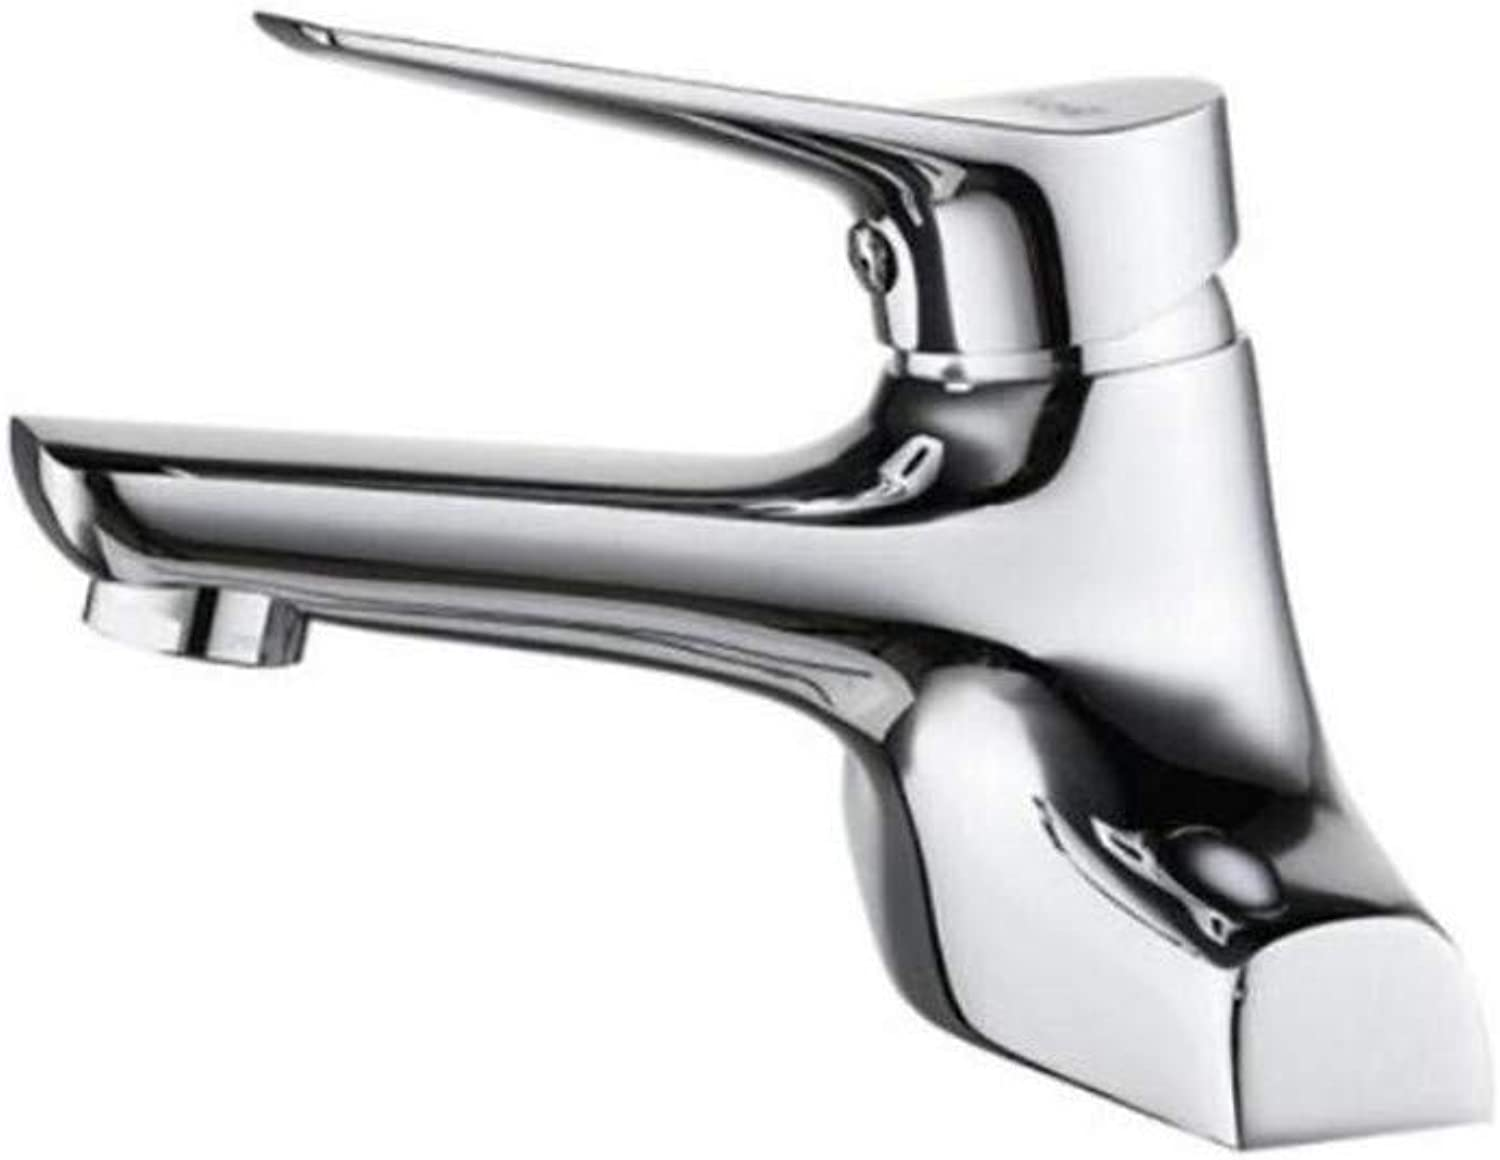 Taps Kitchen Sinktaps Mixer Swivel Faucet Sink Bathroom Basin Faucet Hot and Cold Bathroom Wash Basin Sink Faucet Double